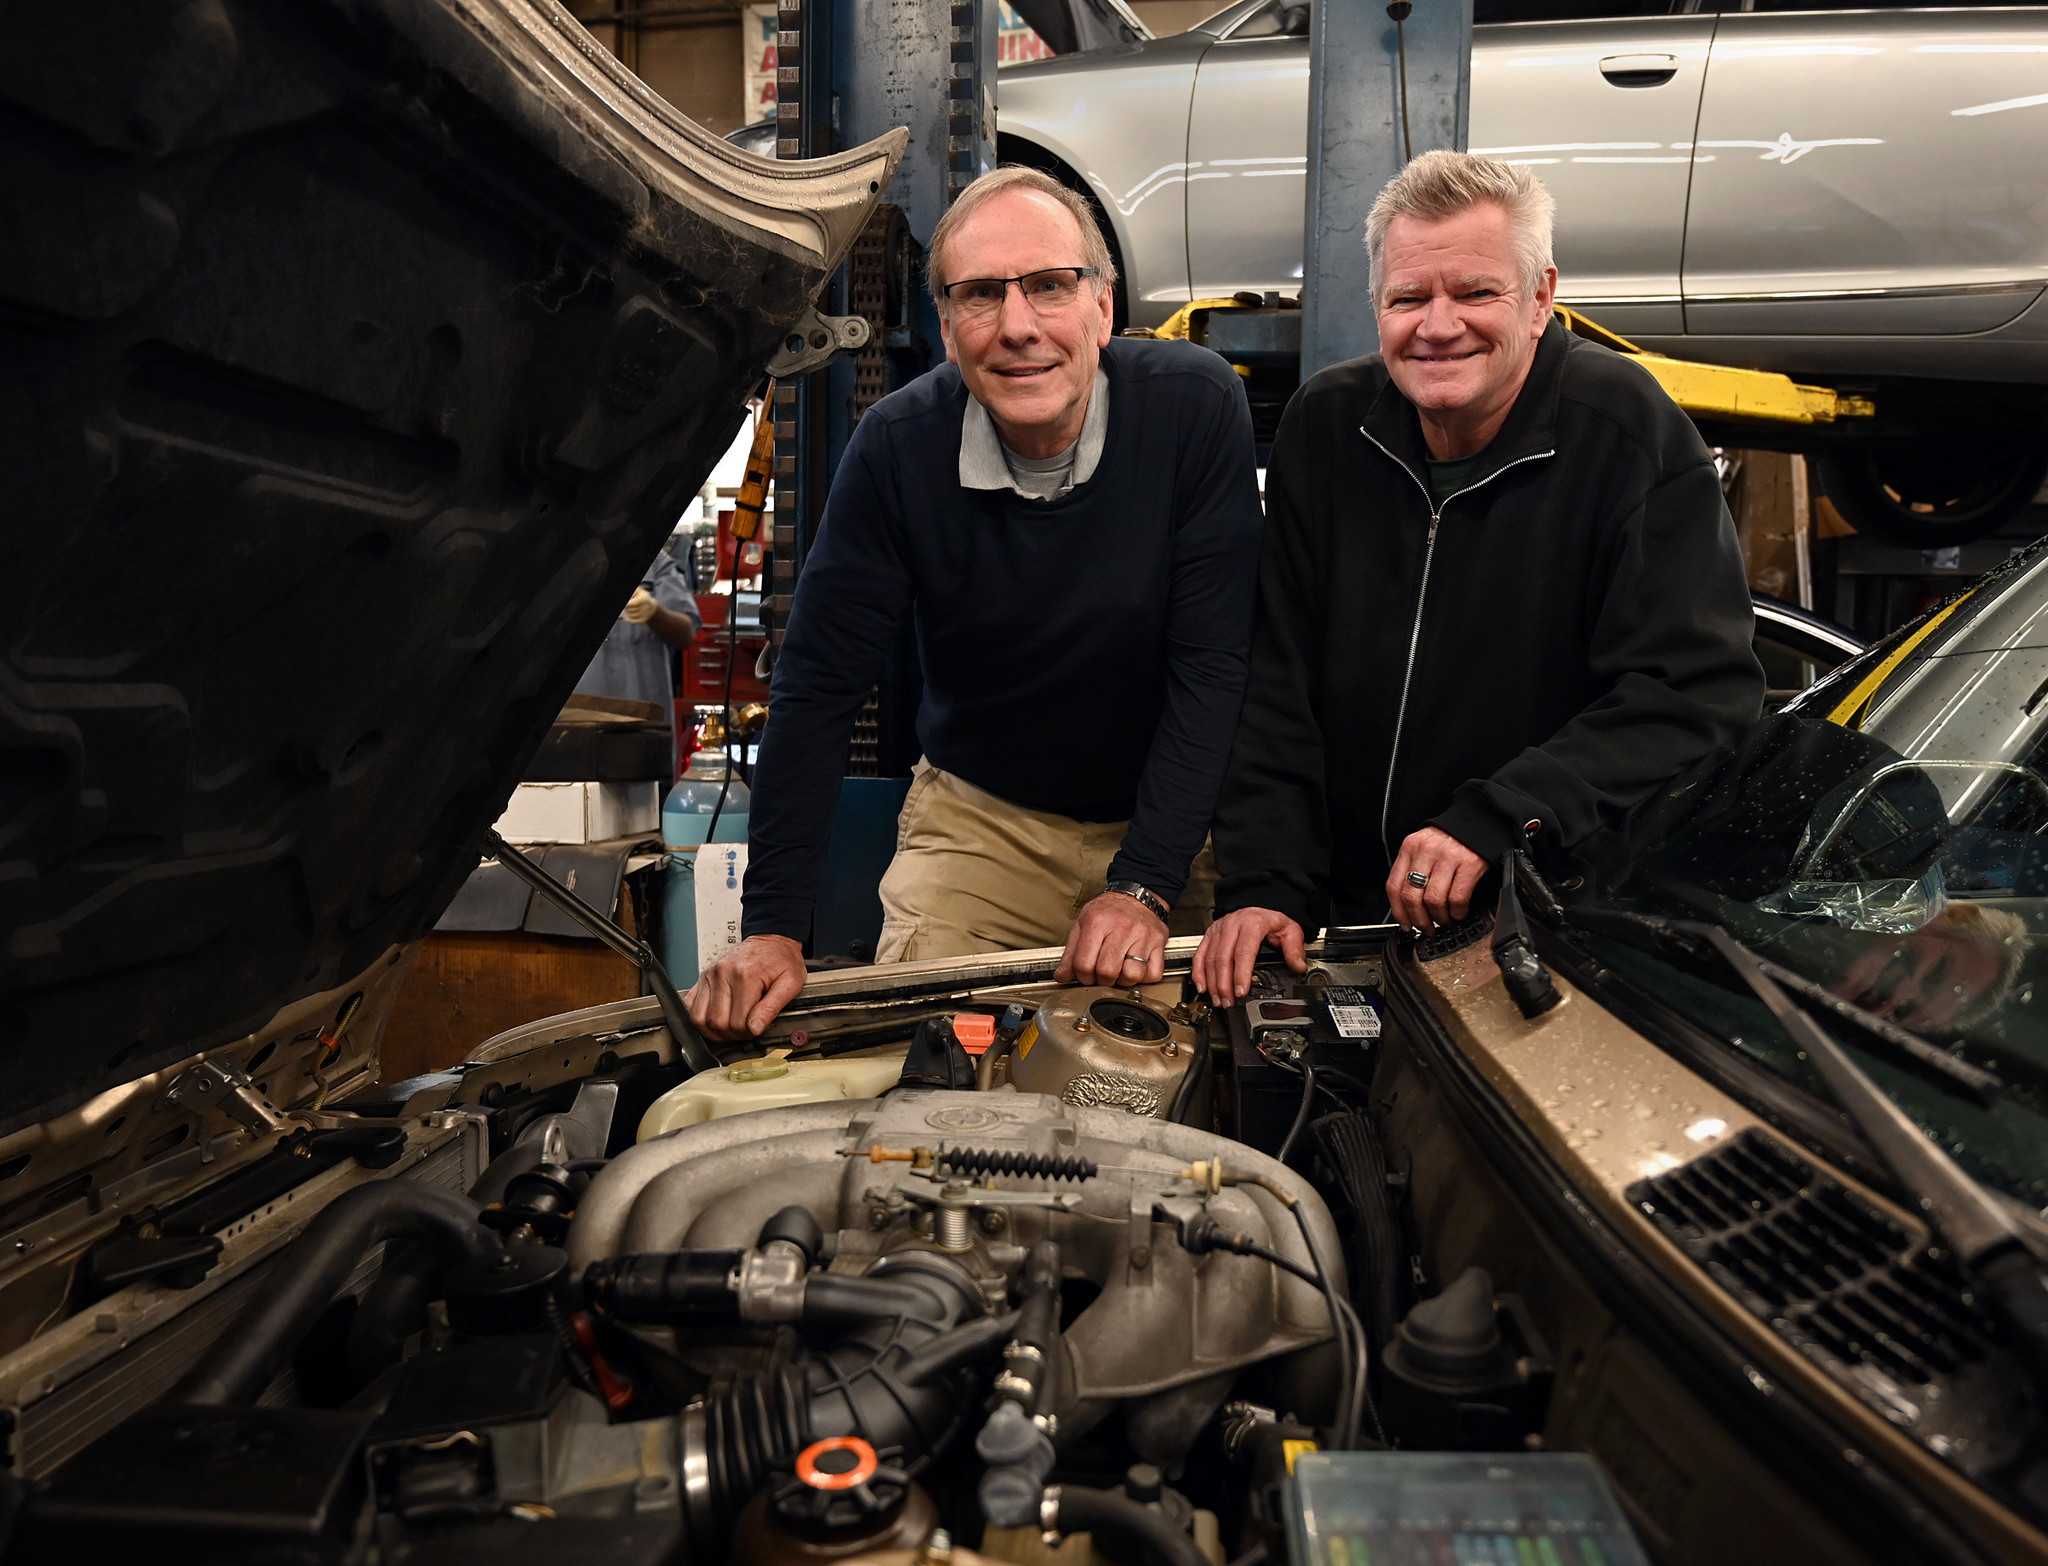 Dave Evans, left, is owner of Autobahn of Towson, and Frank Doty, right, is manager. The business h